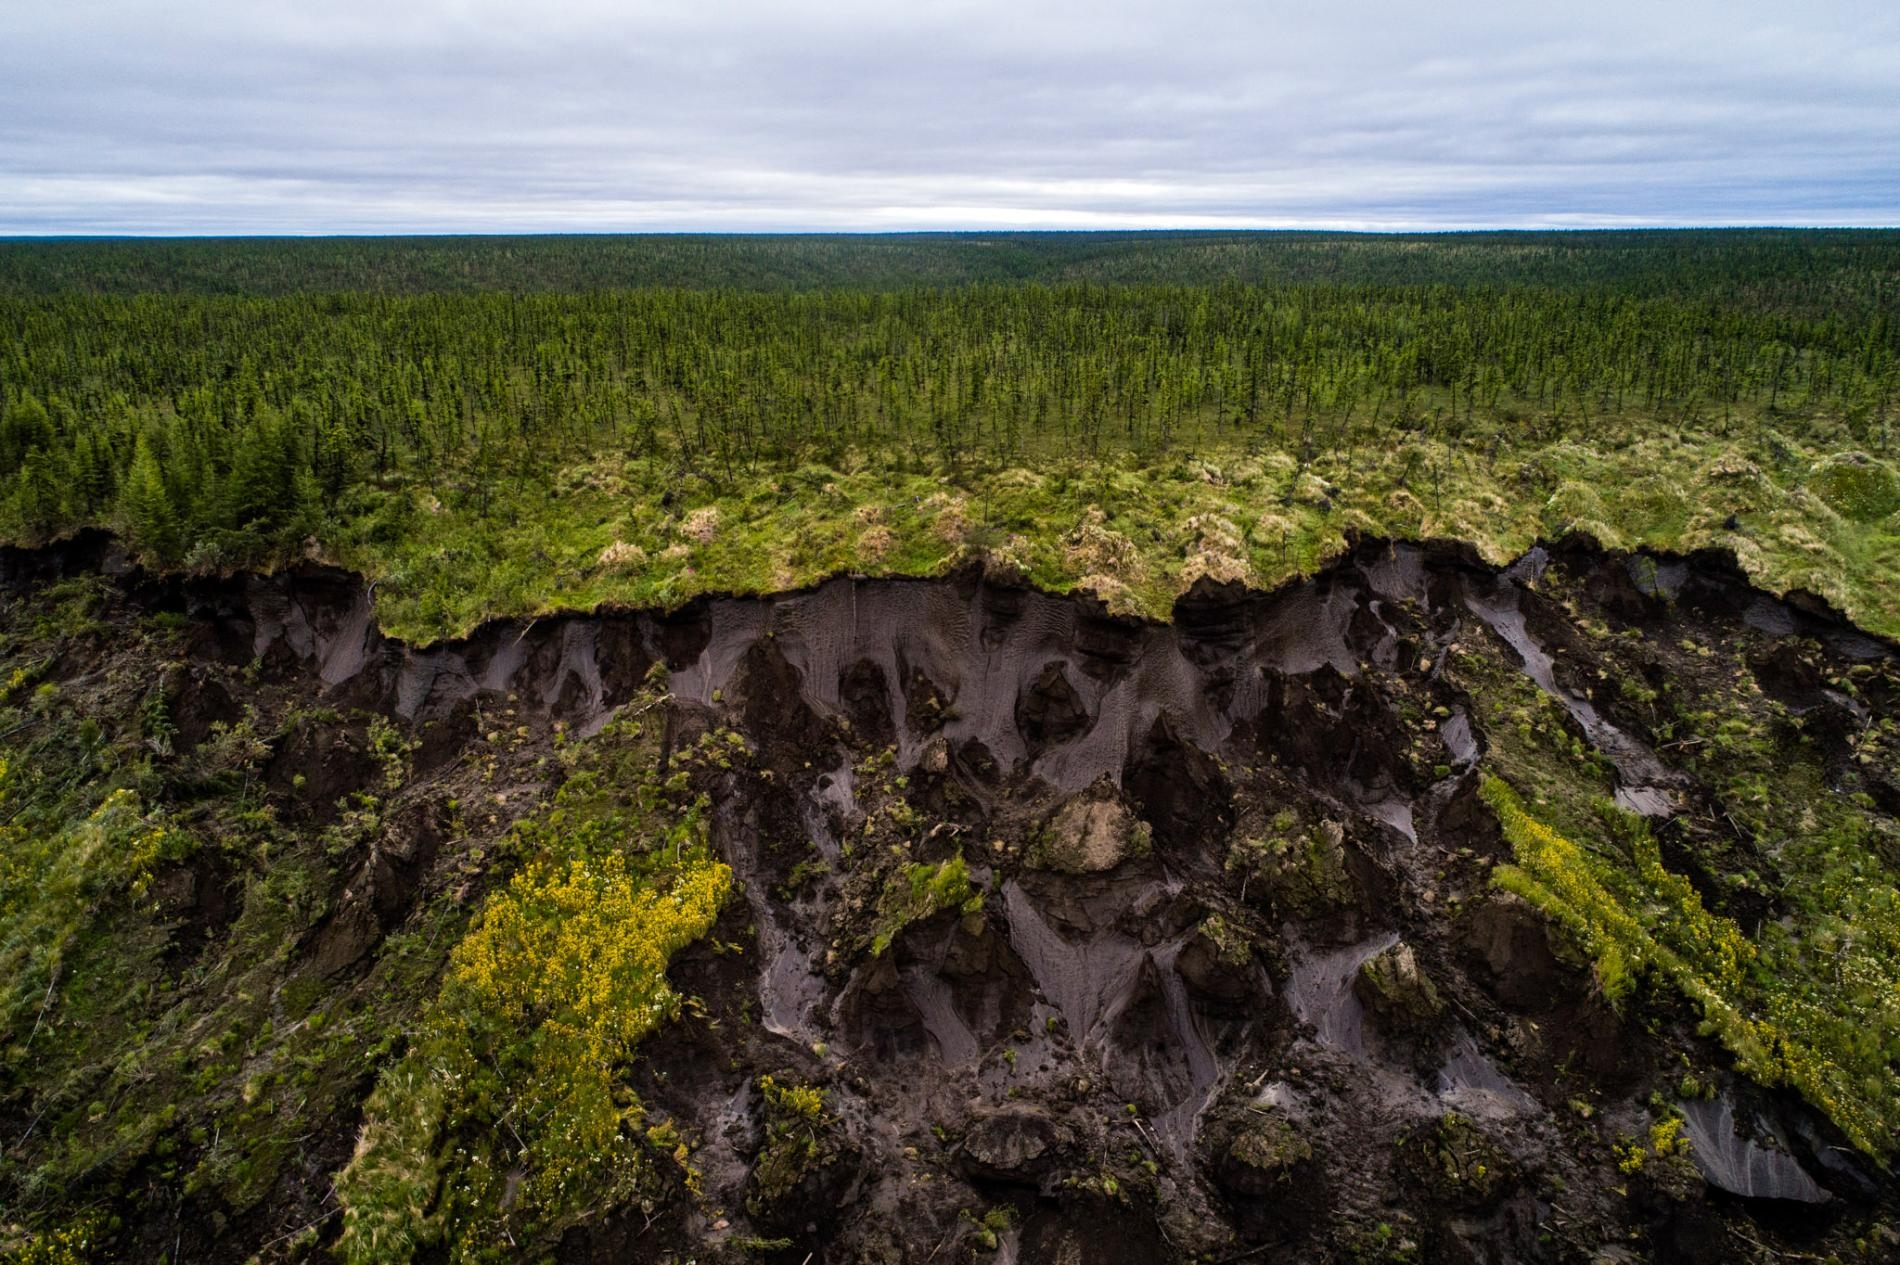 Art and Documentary Photography - Loading 01_permafrost_pleistocene-chersky-246.adapt.1900.1.jpg